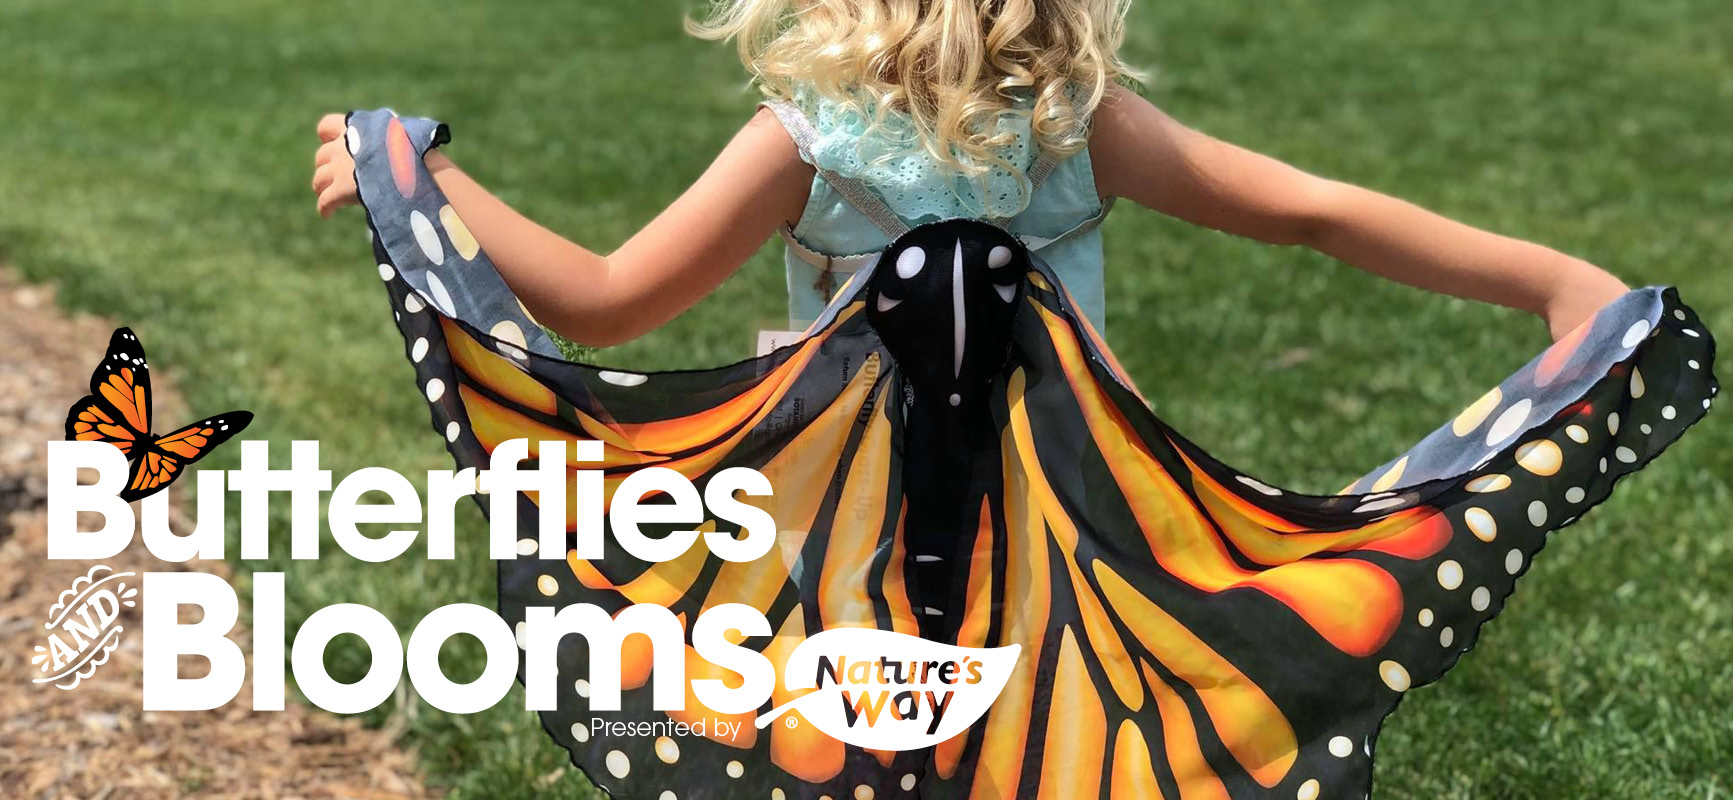 Butterflies & Blooms @ Green Bay Botanical Garden